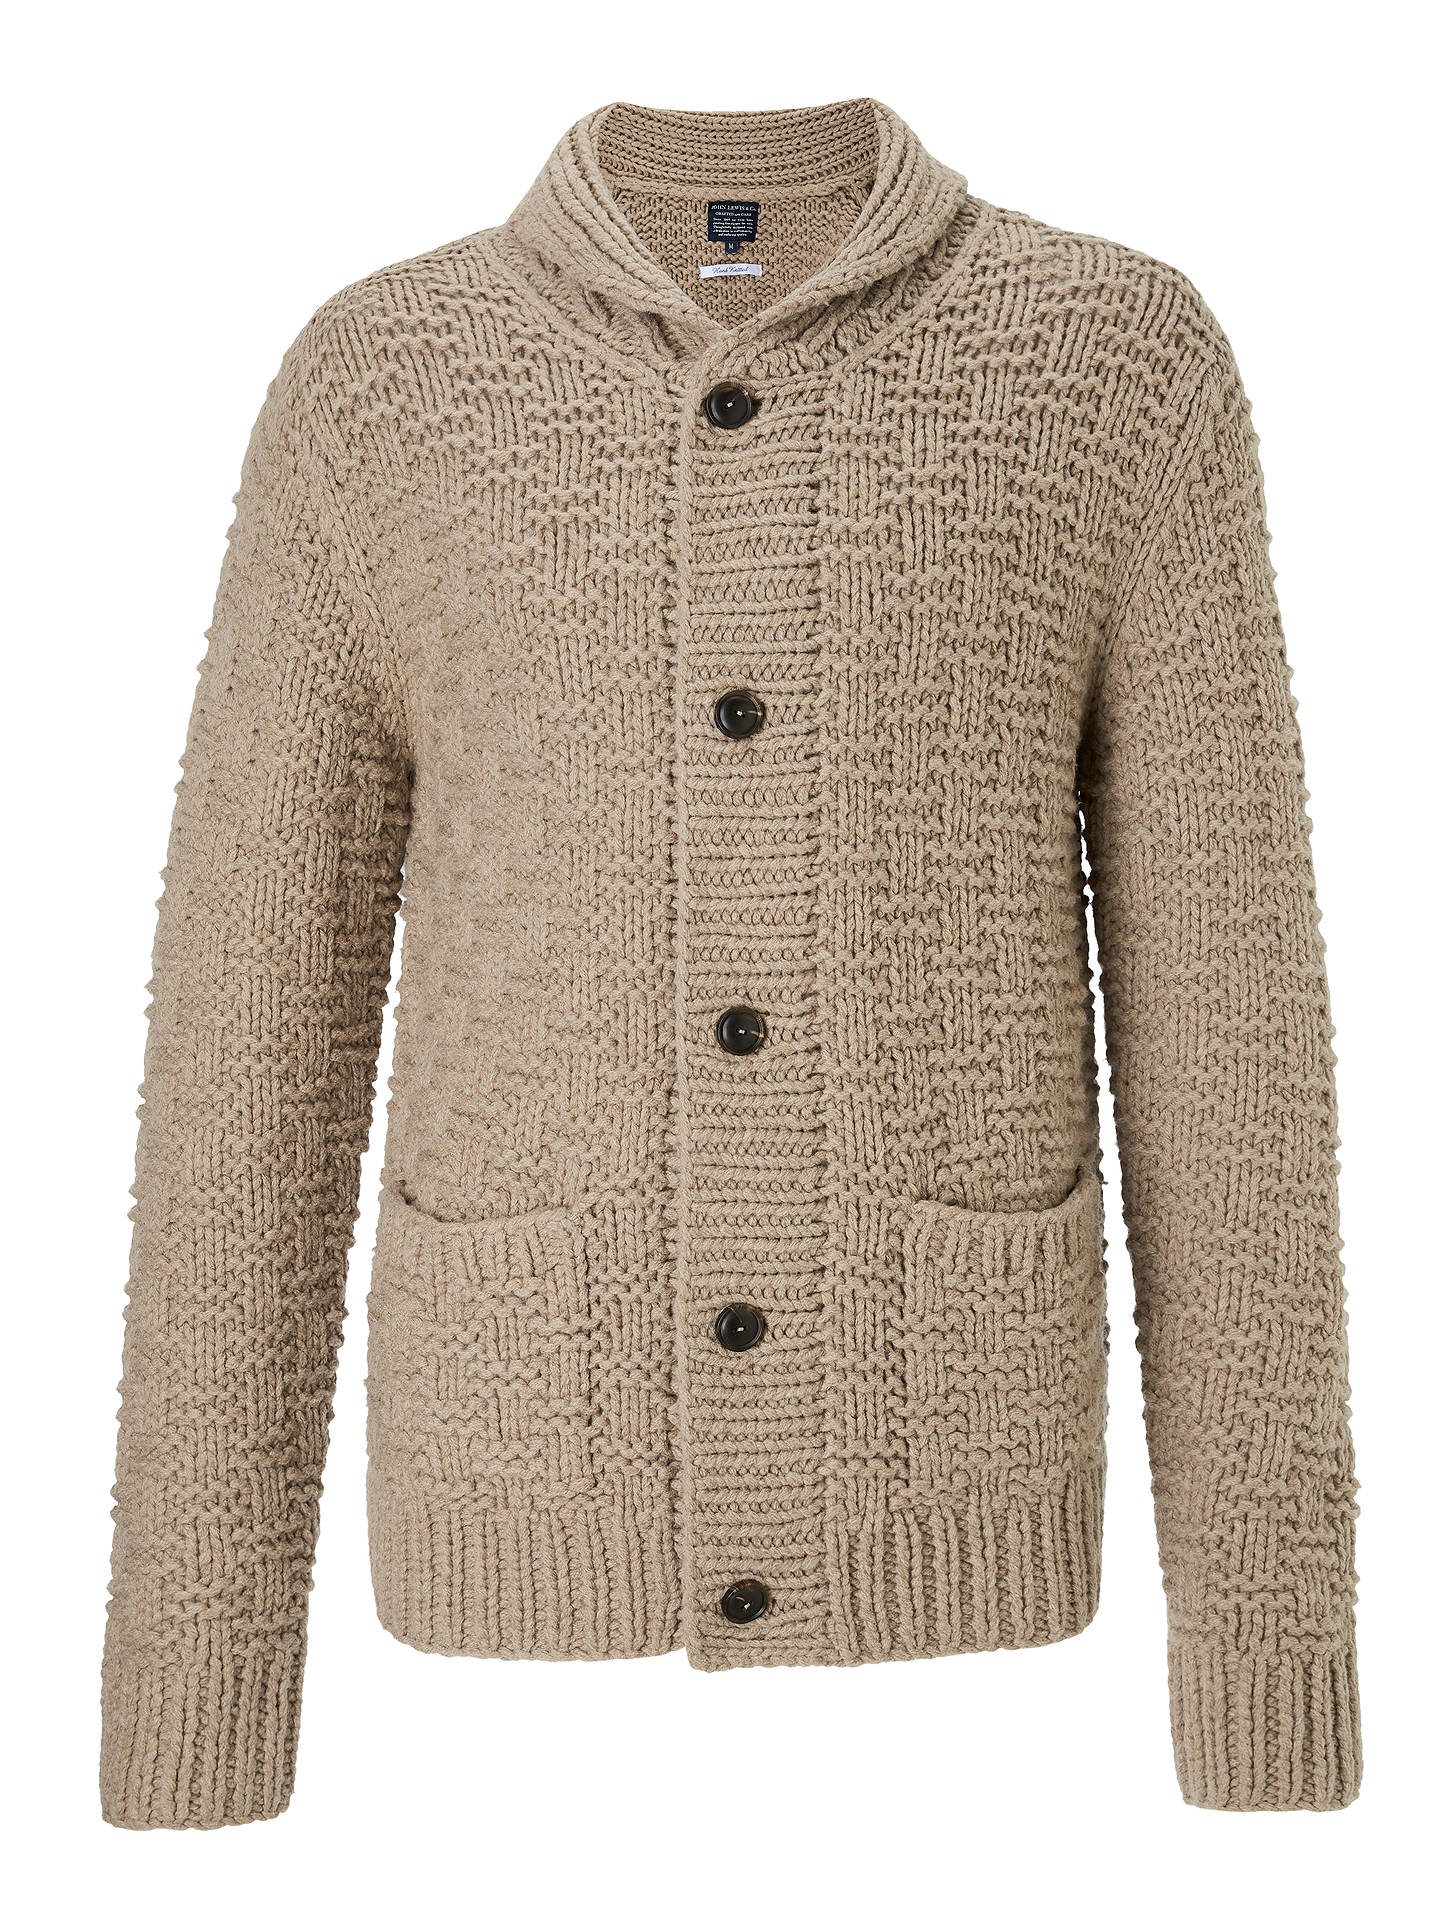 JOHN LEWIS & Co. Hand Knit Shawl Wool Cardigan, Oatmeal at